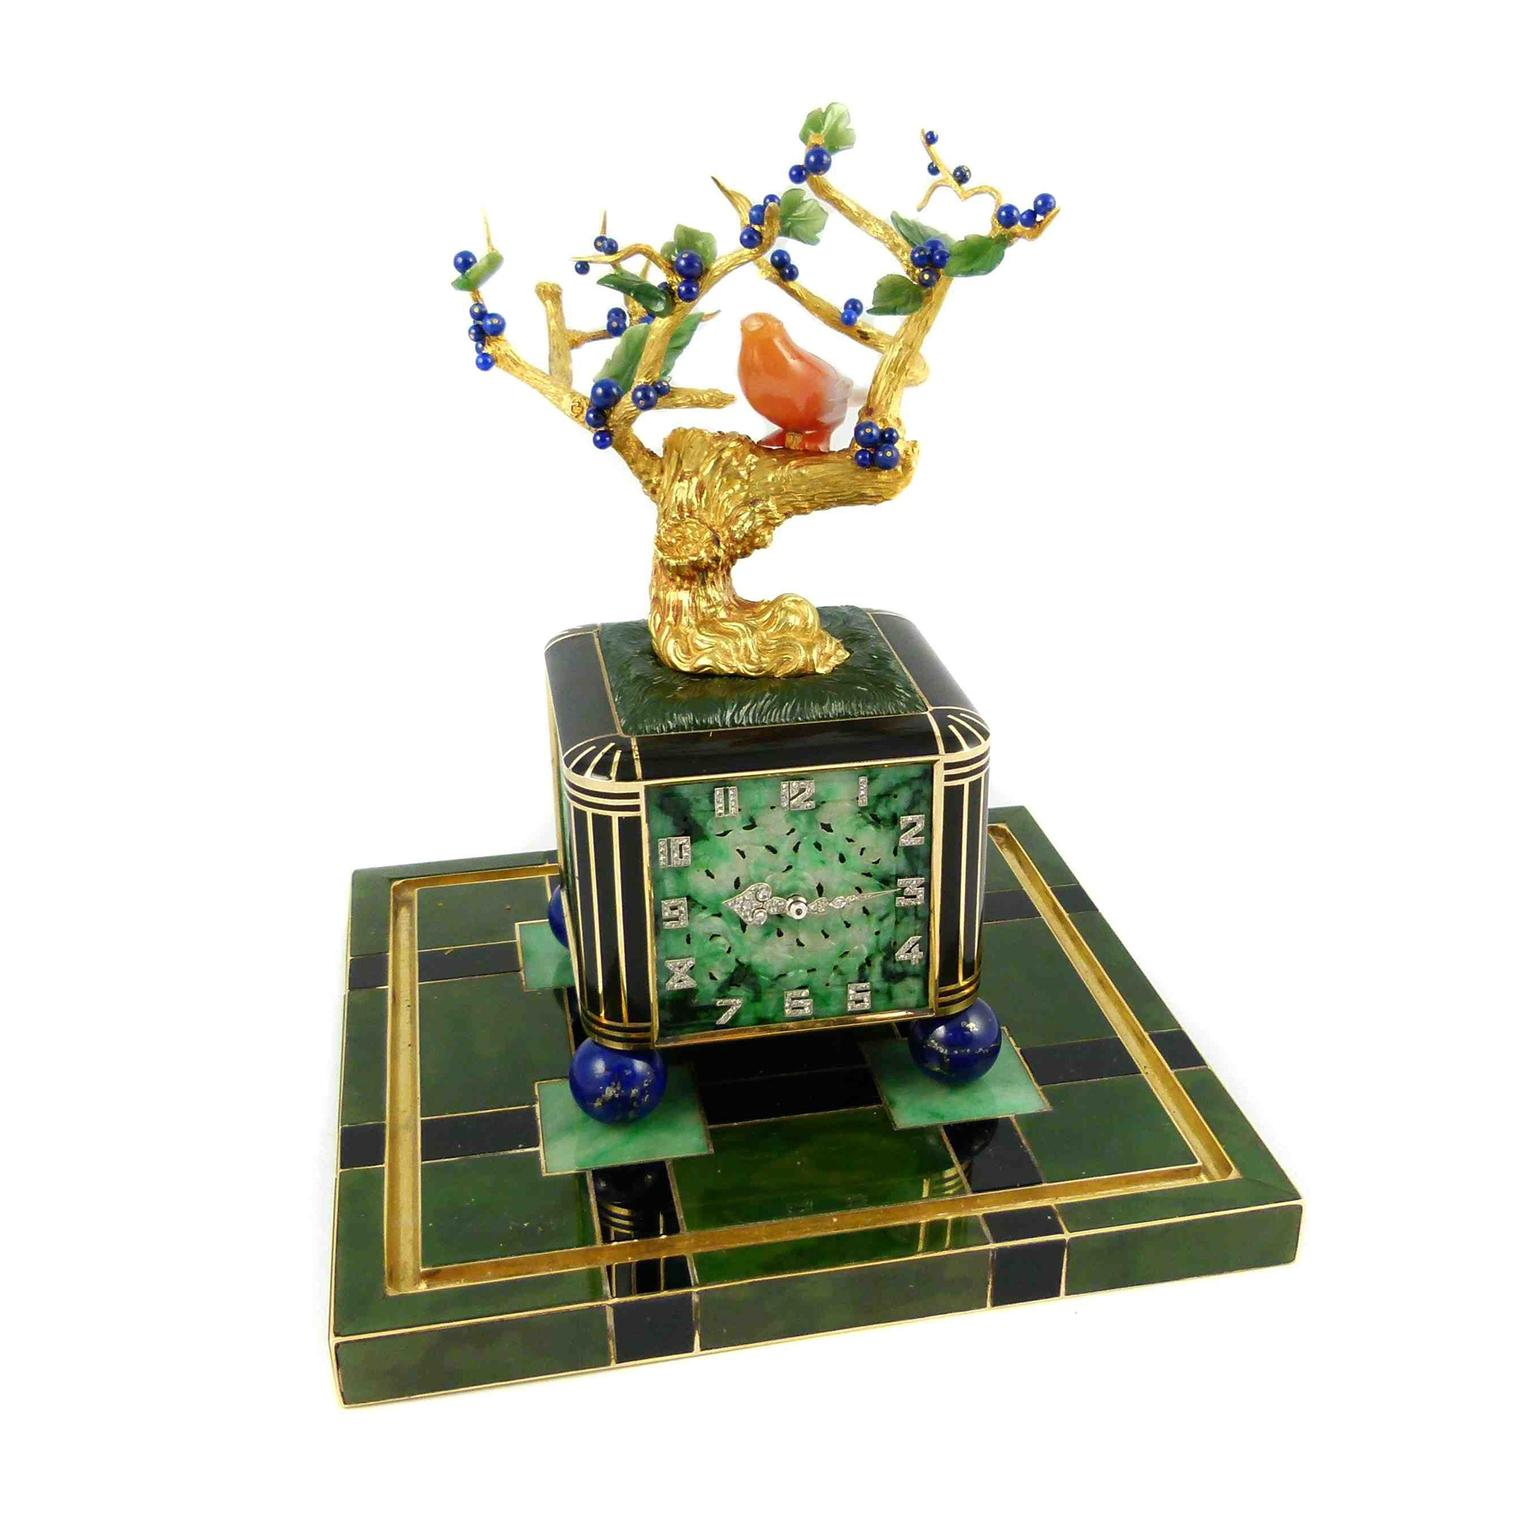 SJ Phillips' Bonsai tree and vase clock by Verger Frères